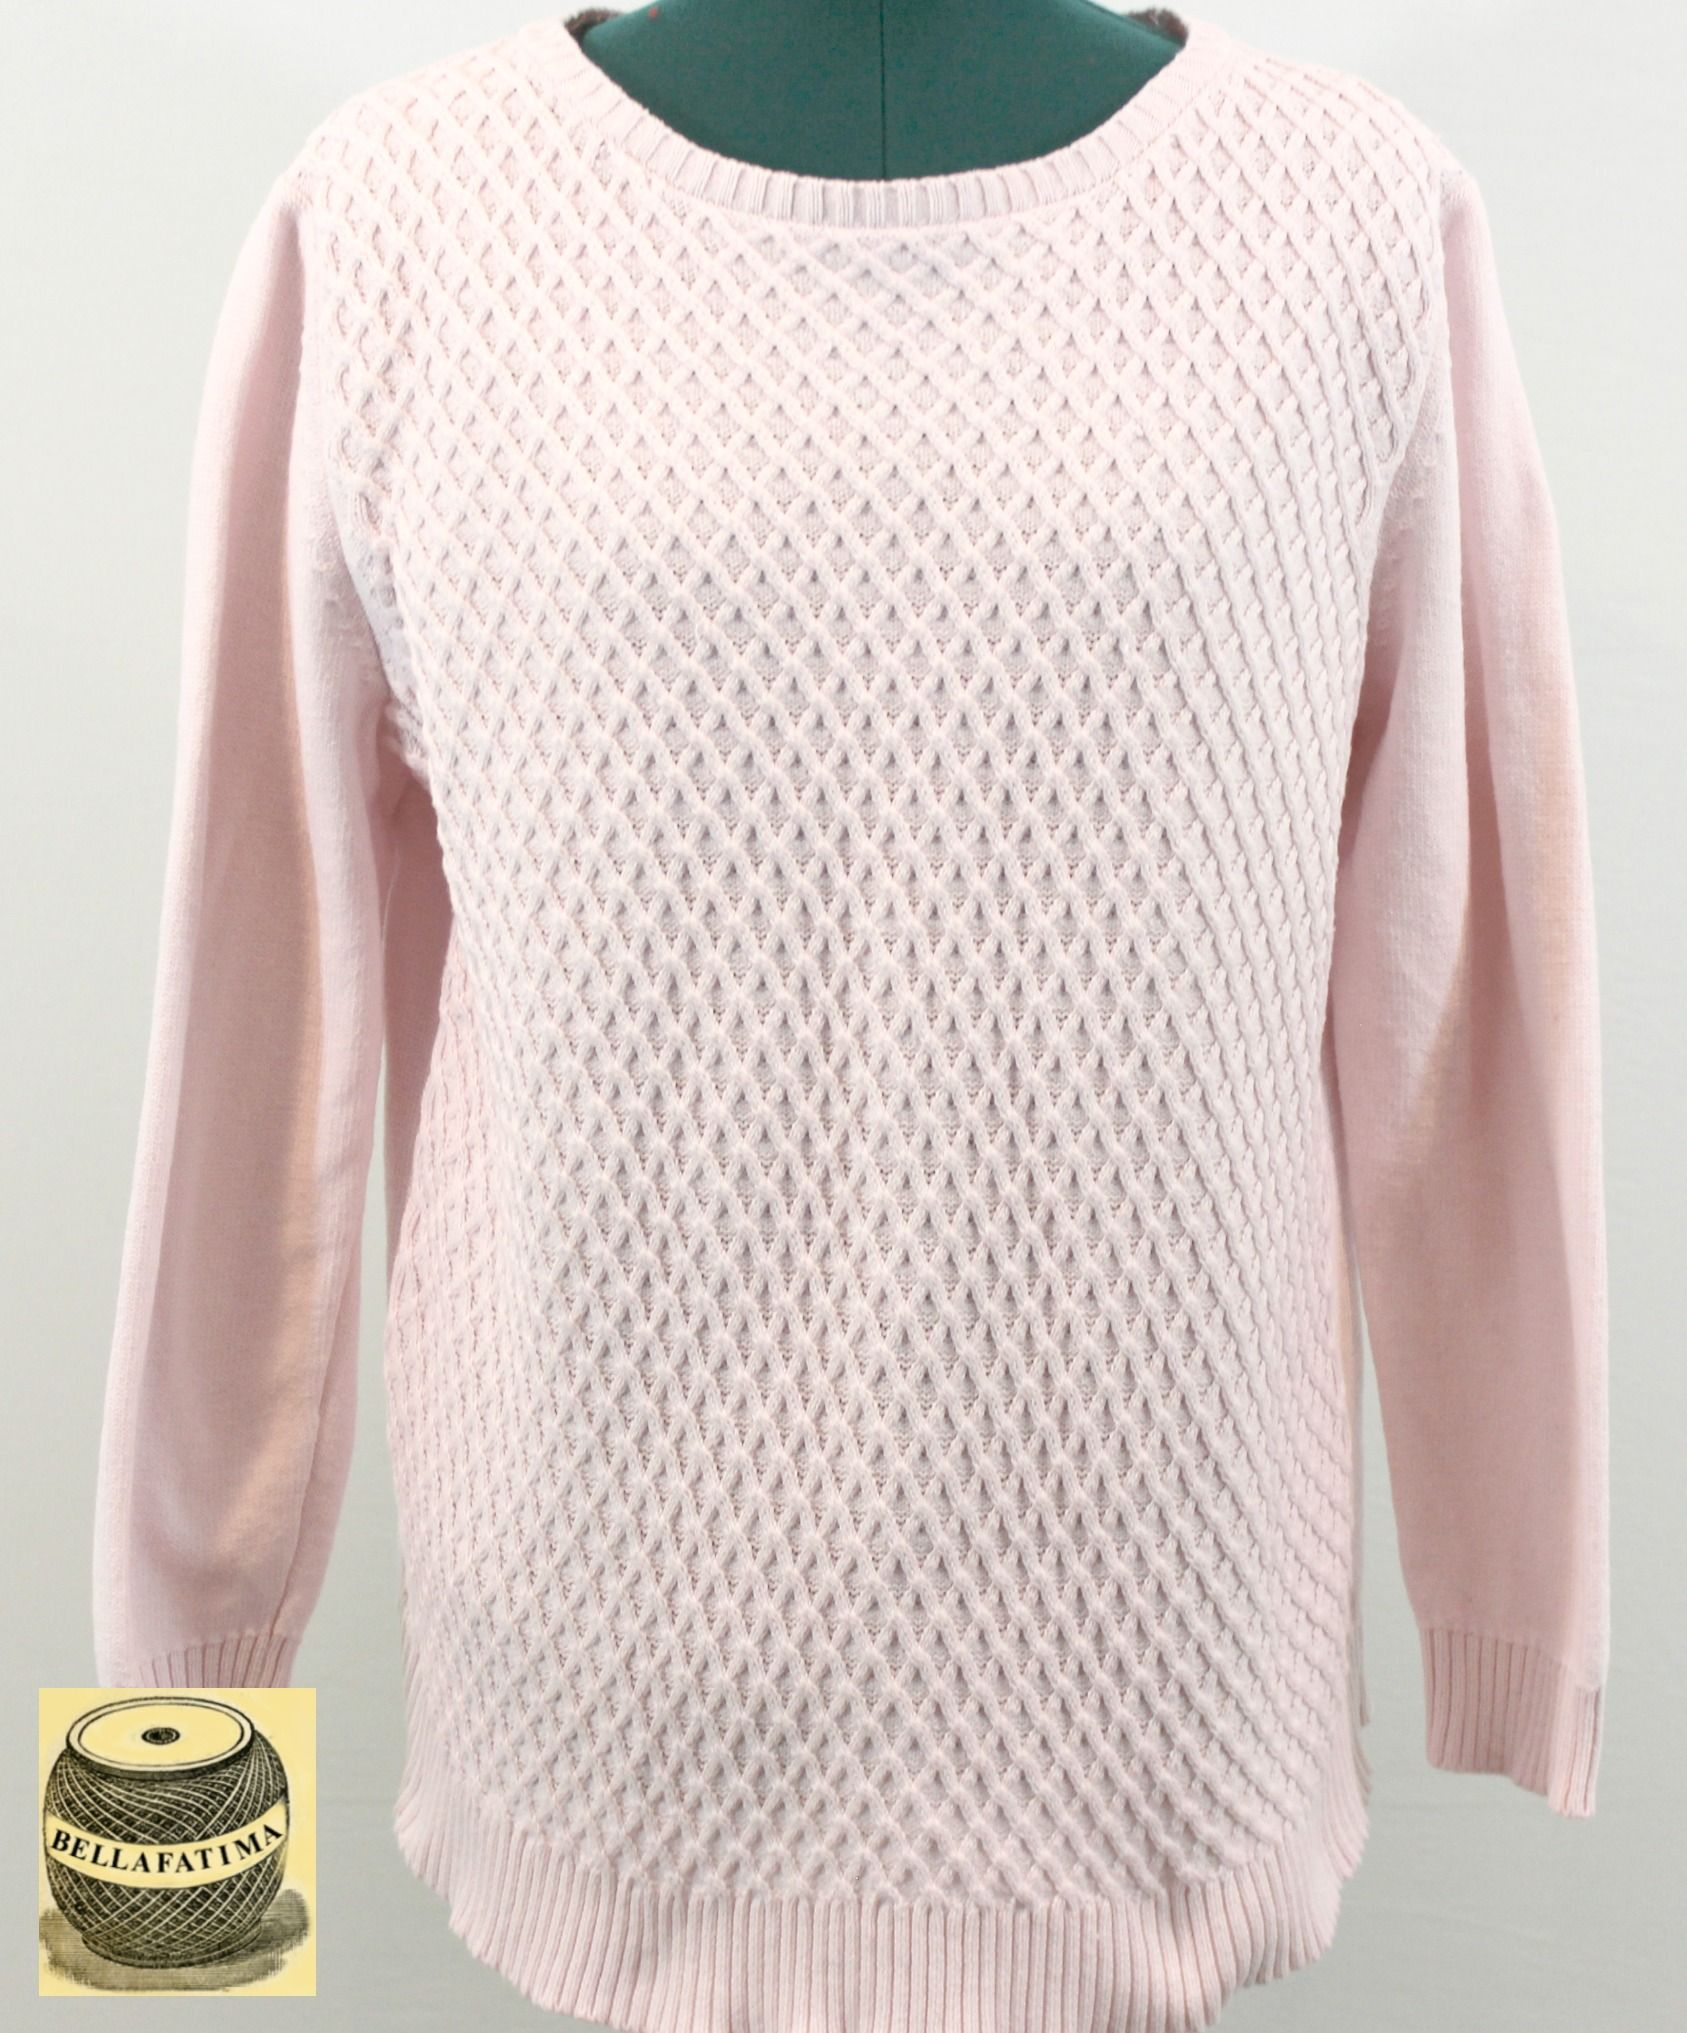 Pale Pink Cotton Sweater with honeycomb pattern. By Karen Scott ...